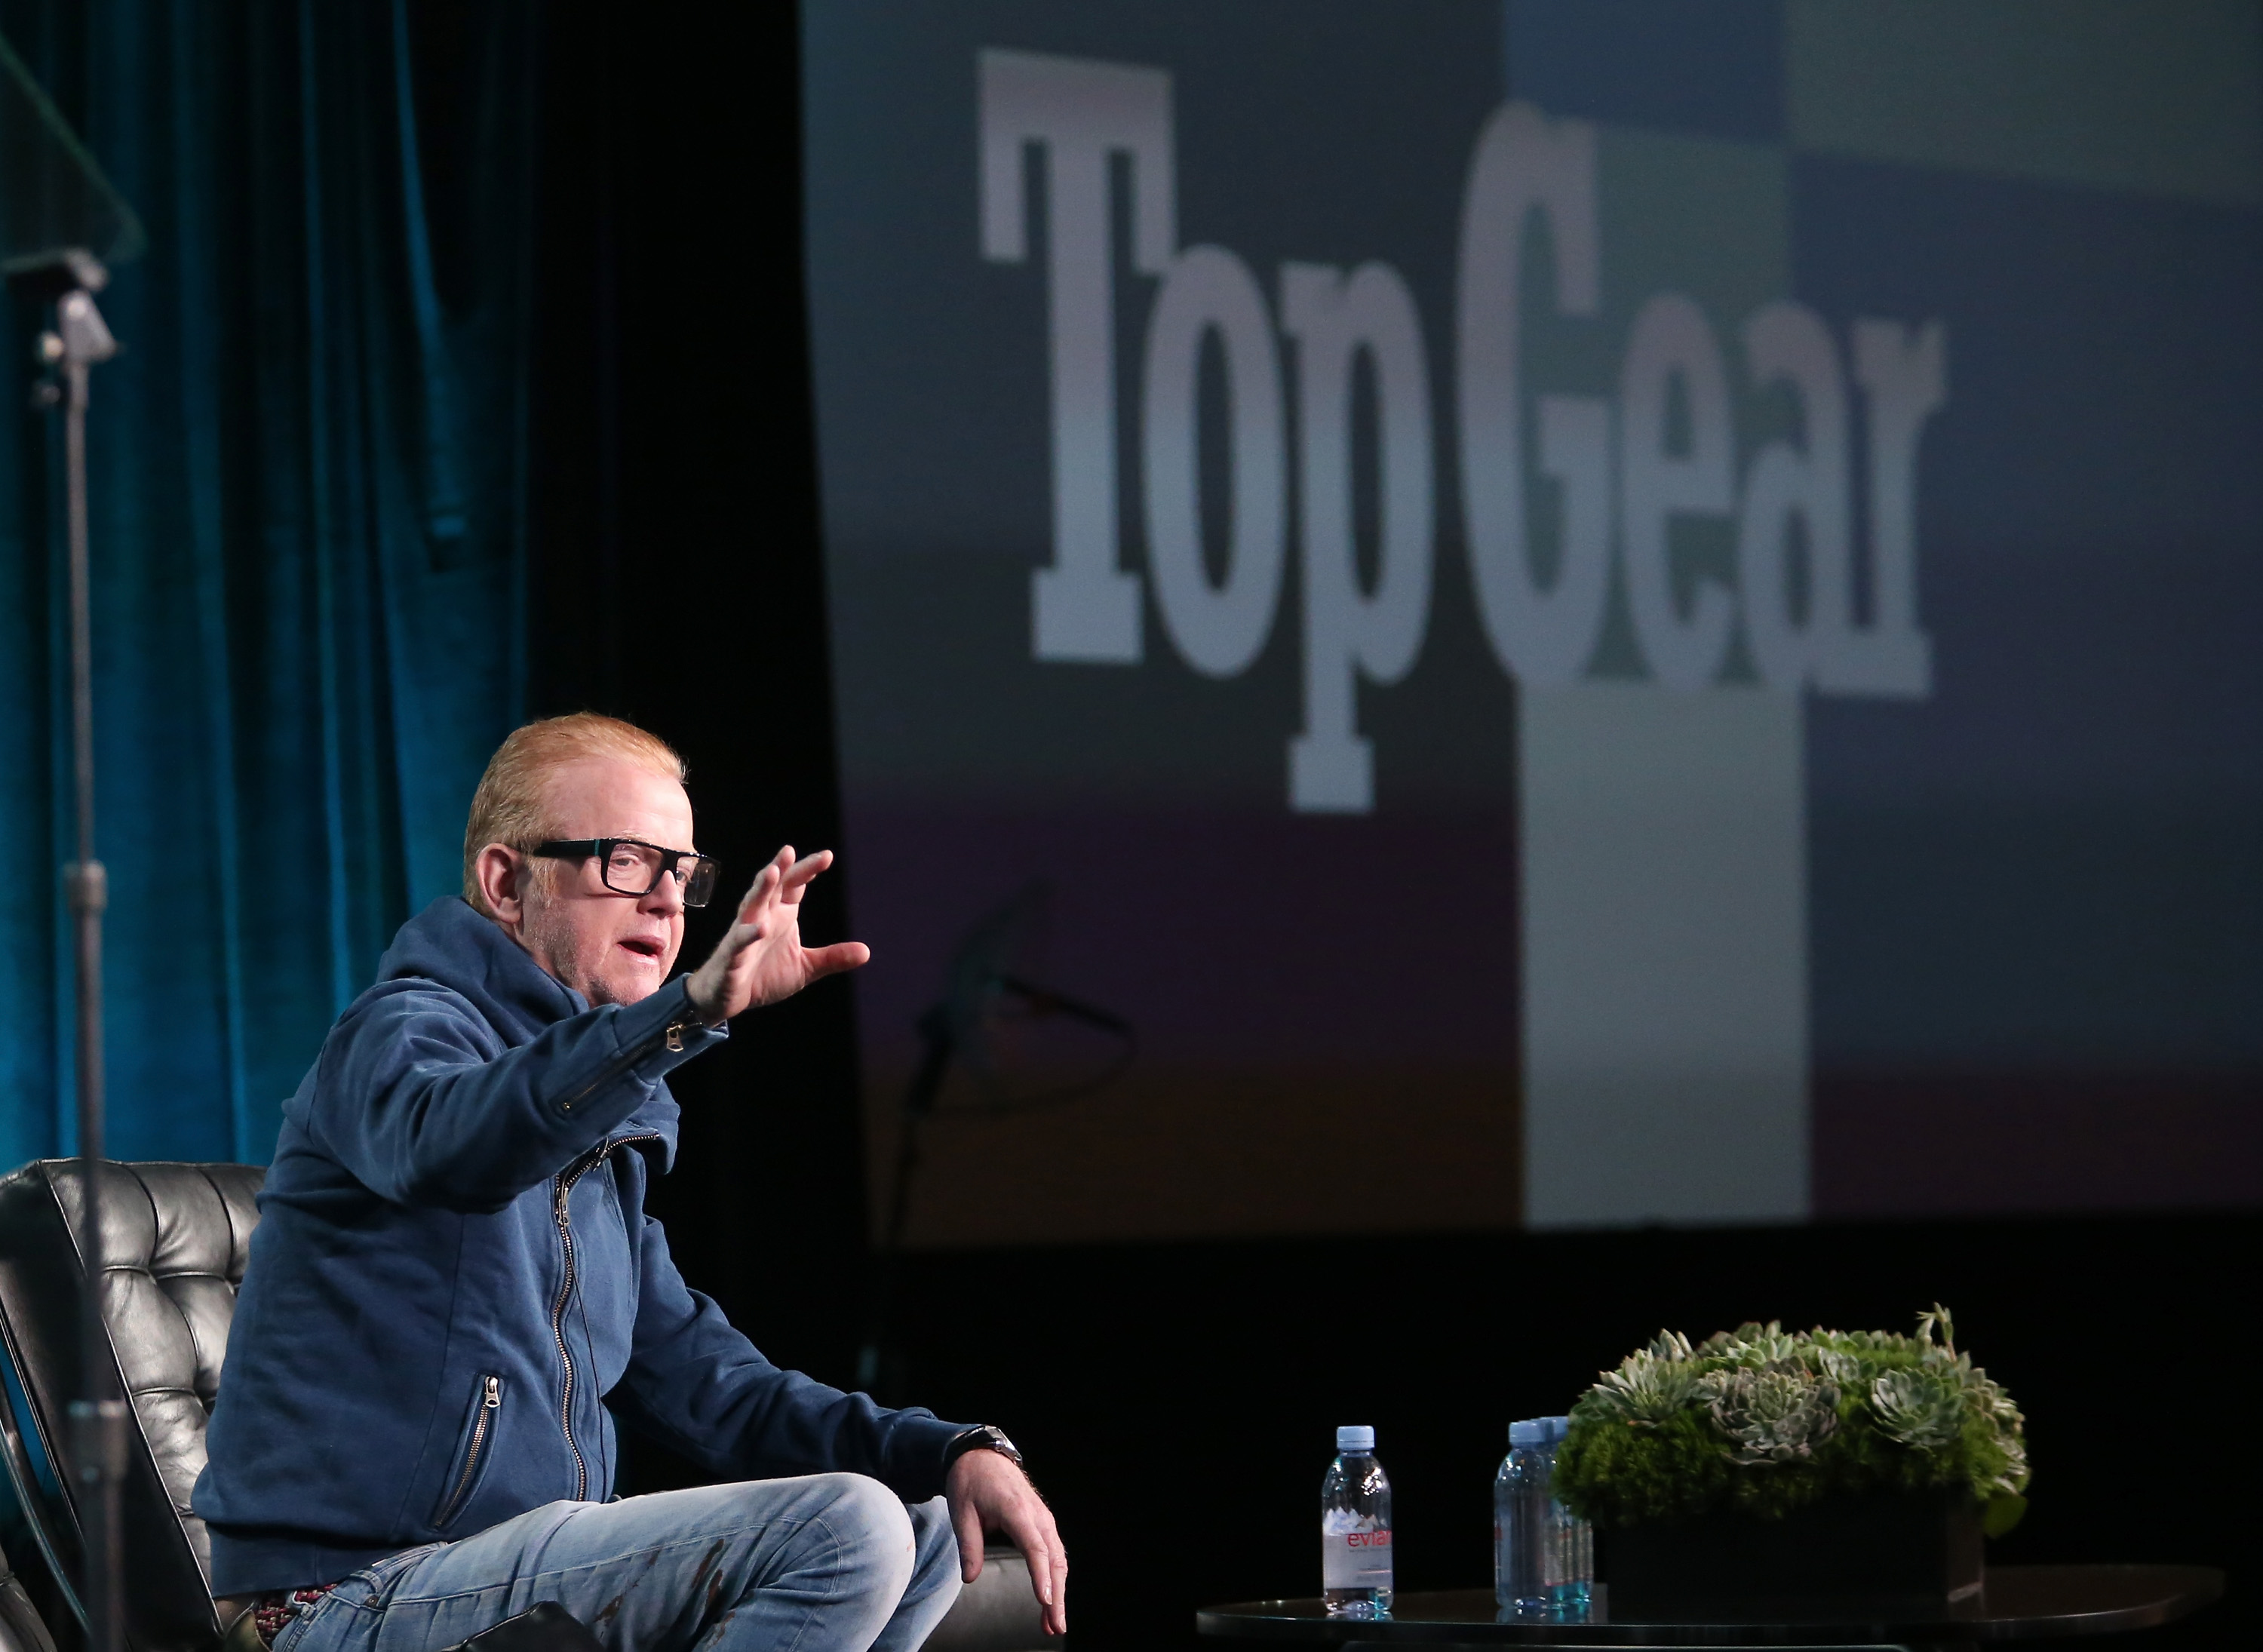 PASADENA, CA - JANUARY 08: Host Chris Evans speaks onstage during the Top Gear panel as part of the BBC America portion of This is Cable 2016 Television Critics Association Winter Tour at Langham Hotel on January 8, 2016 in Pasadena, California.   Frederick M. Brown/Getty Images/AFP